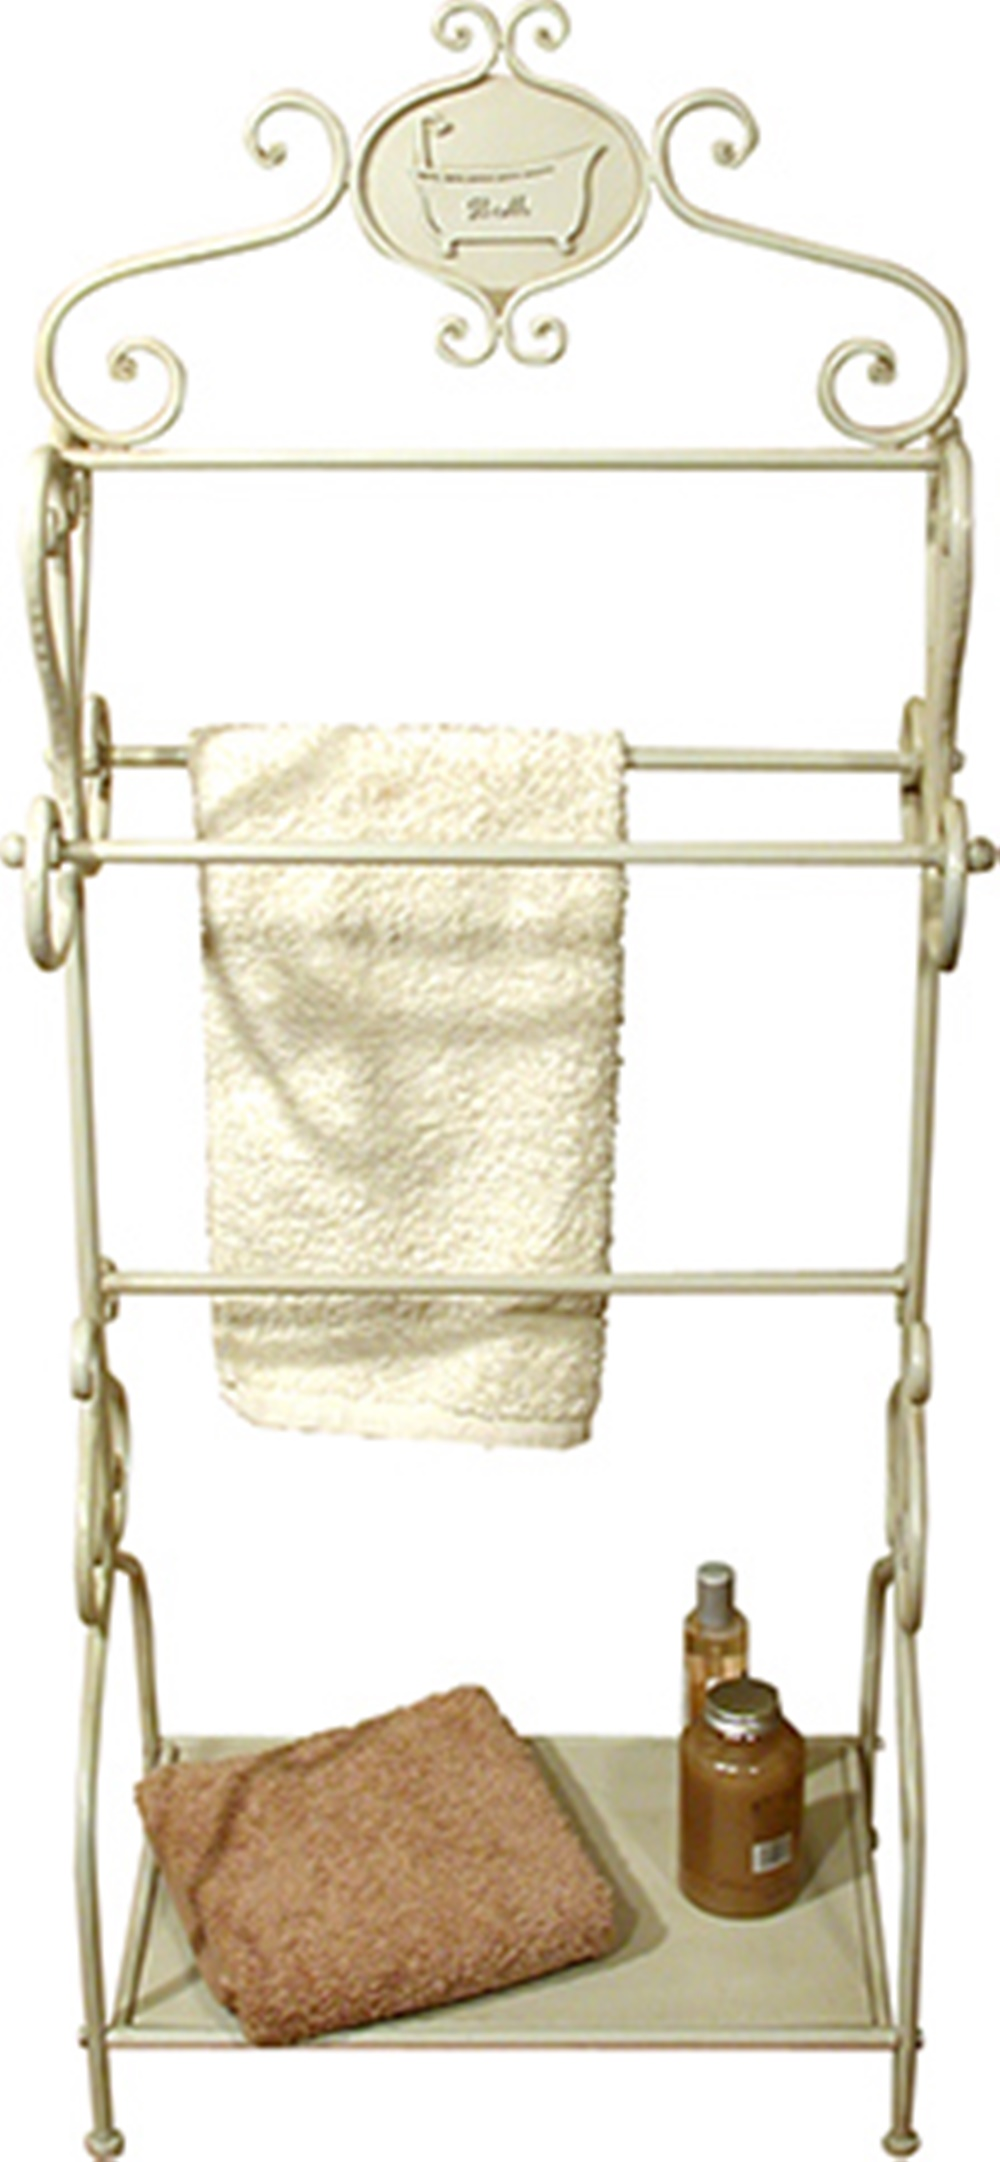 vintage style bathroom accessories interiors and